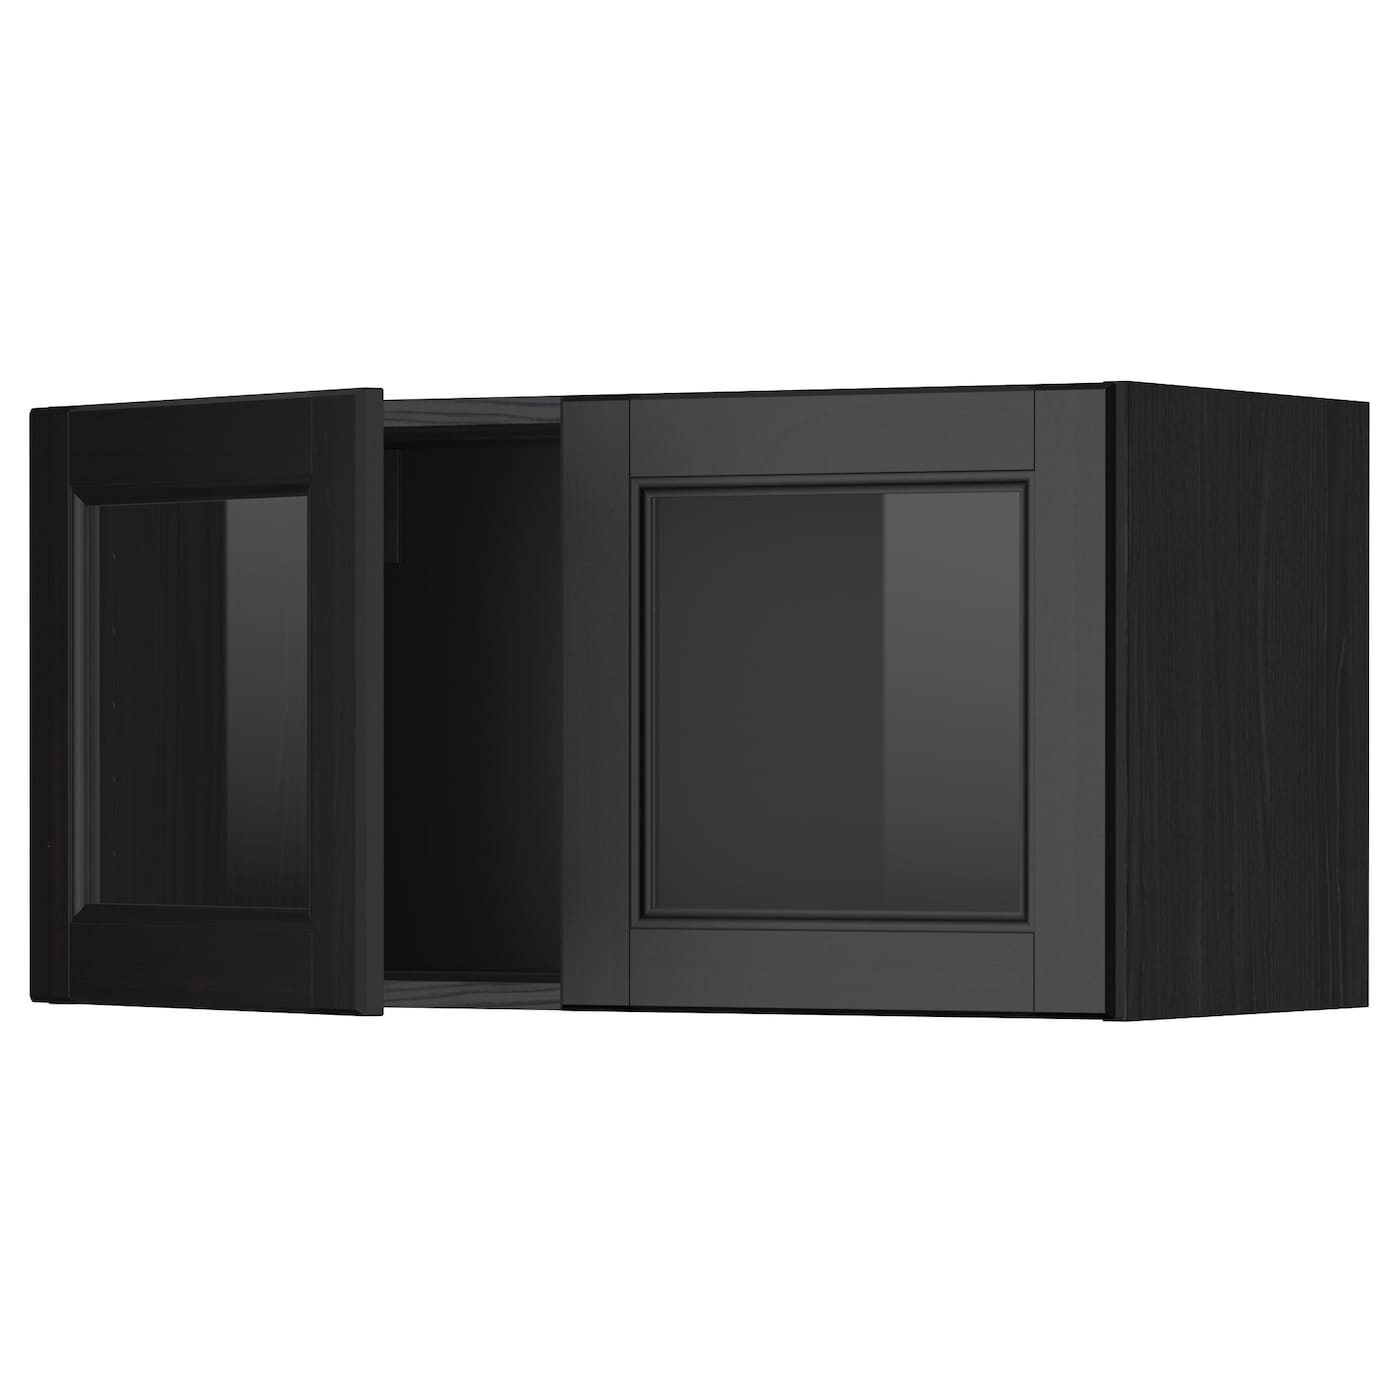 Metod Wall Cabinet With 2 Glass Doors Black Laxarby Black